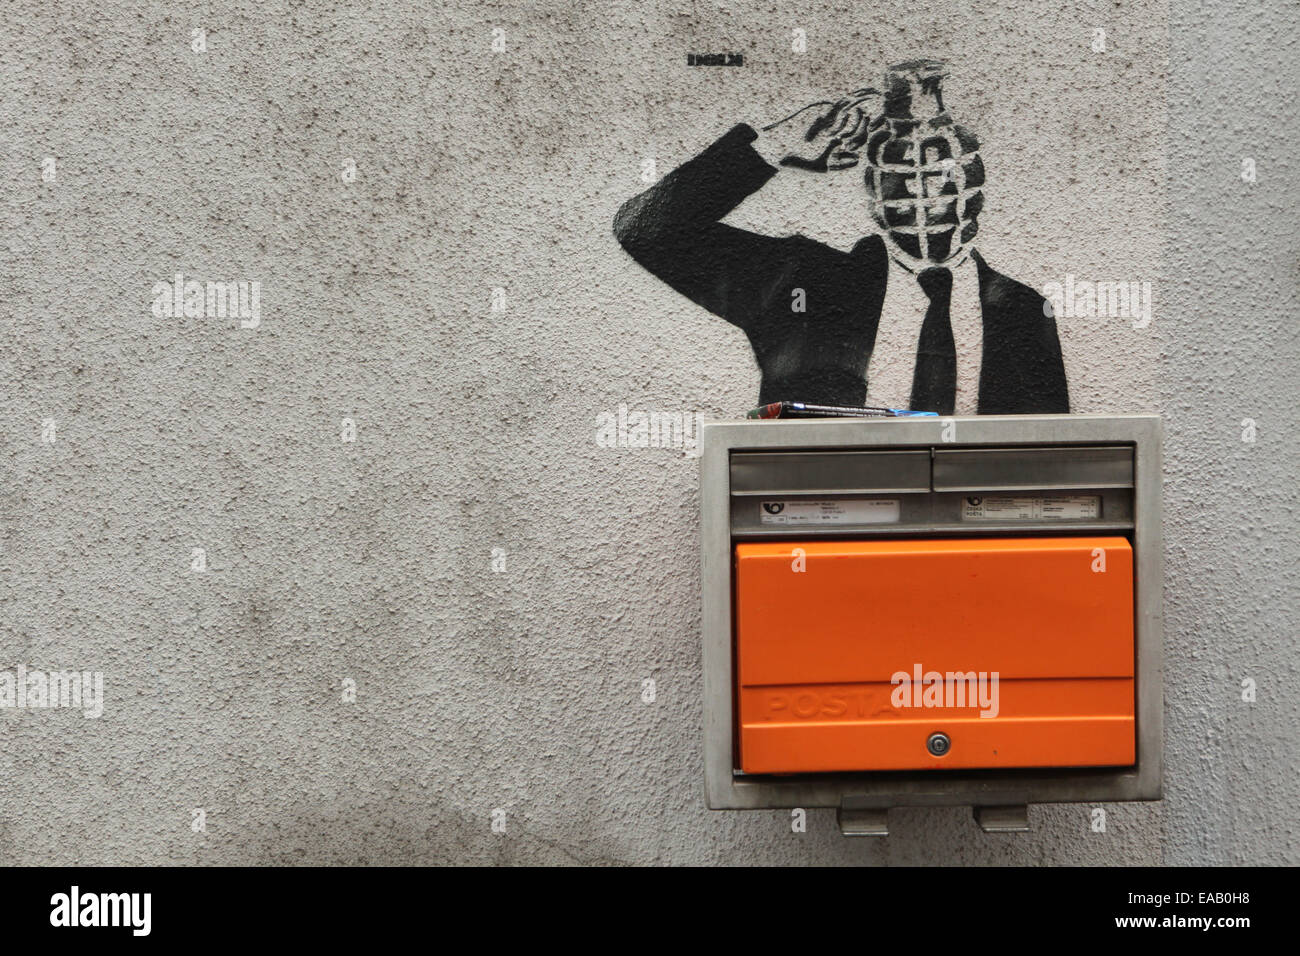 Grenade-headed person blowing his head up depicted in a street graffiti next to a letter box in Prague, Czech Republic. - Stock Image